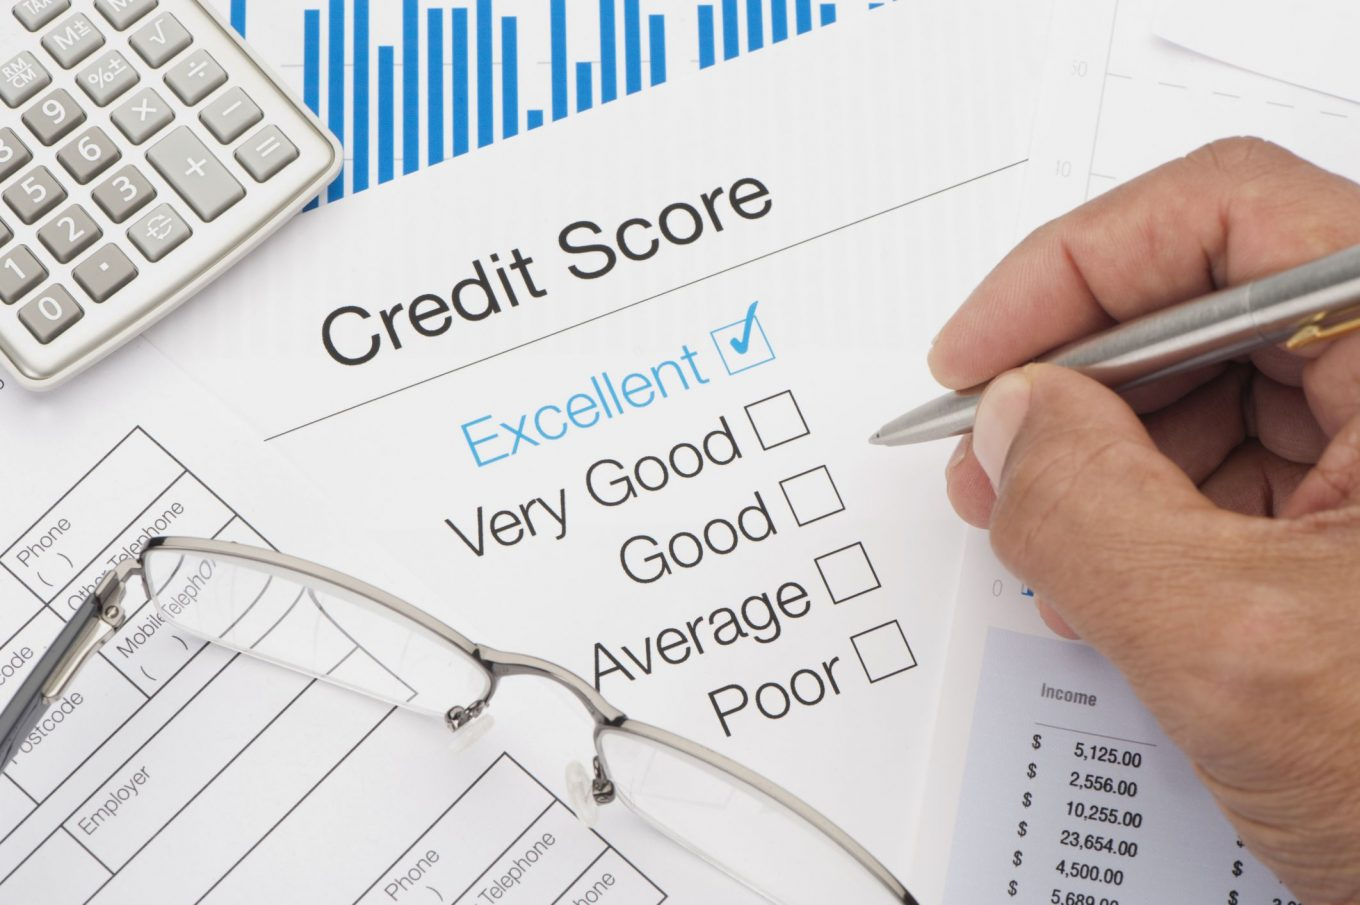 rising credit score - If You're Wondering How to Fix Credit Score, Read These Three Golden Rules